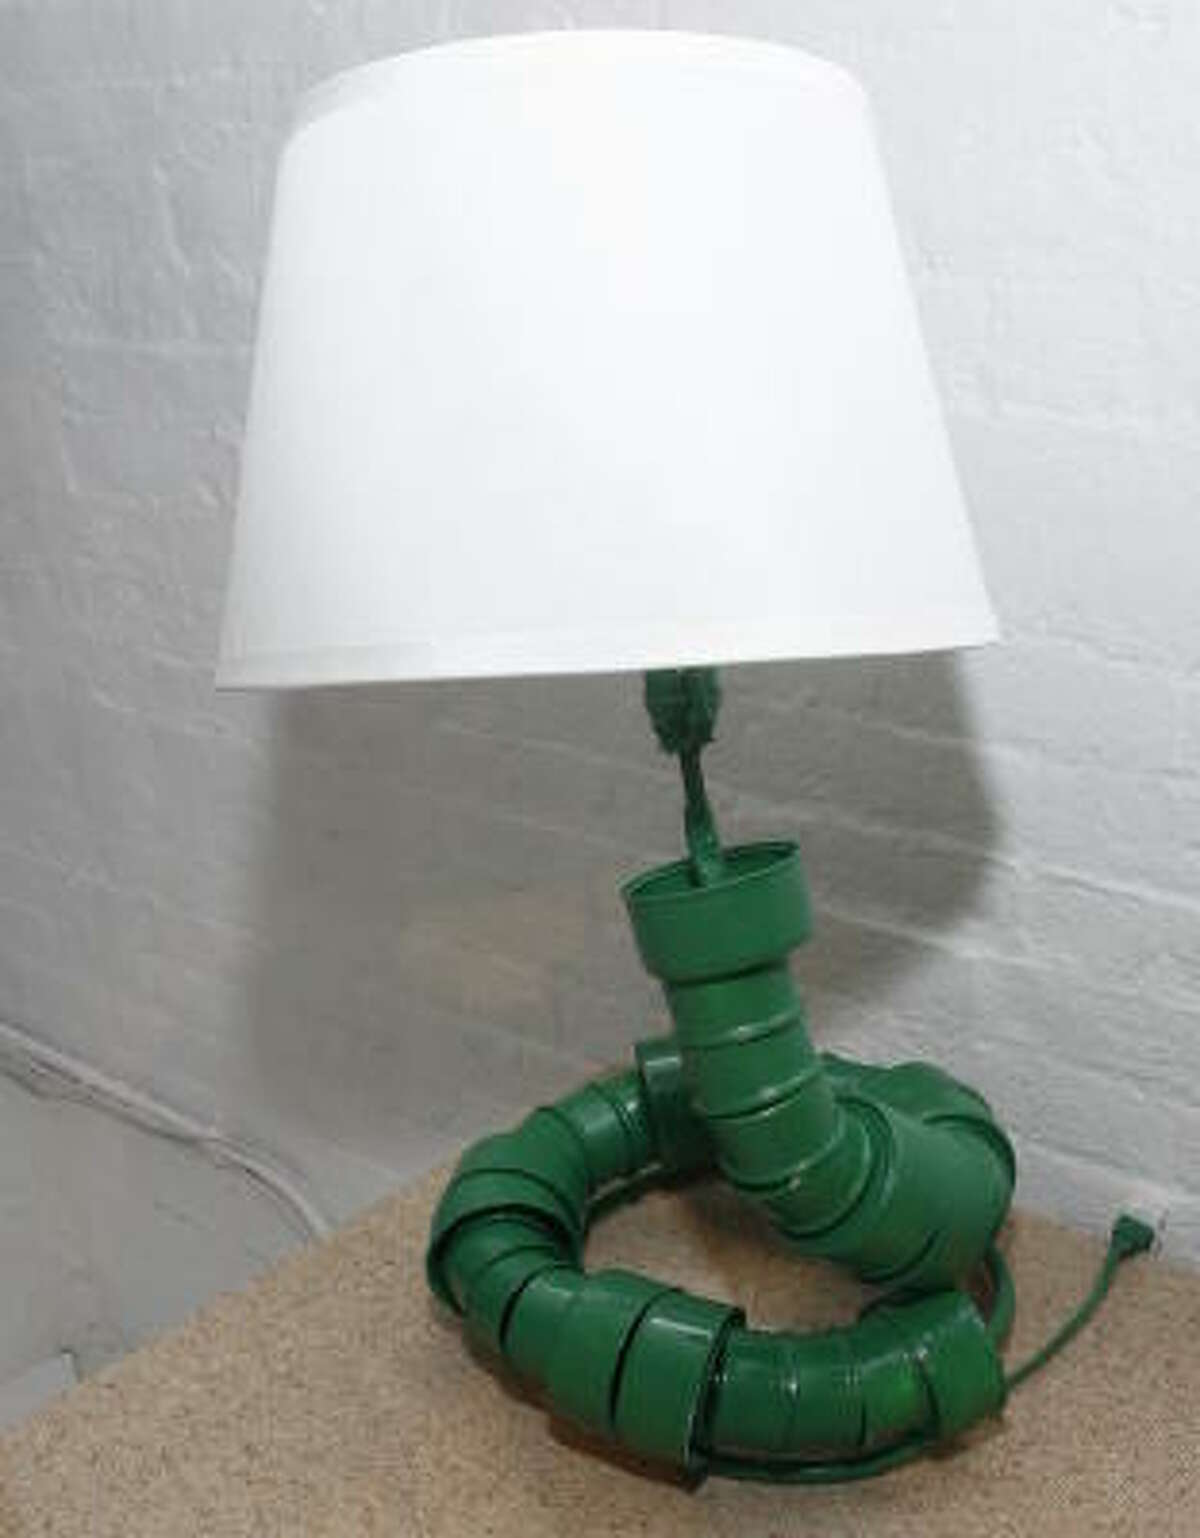 The lamp.